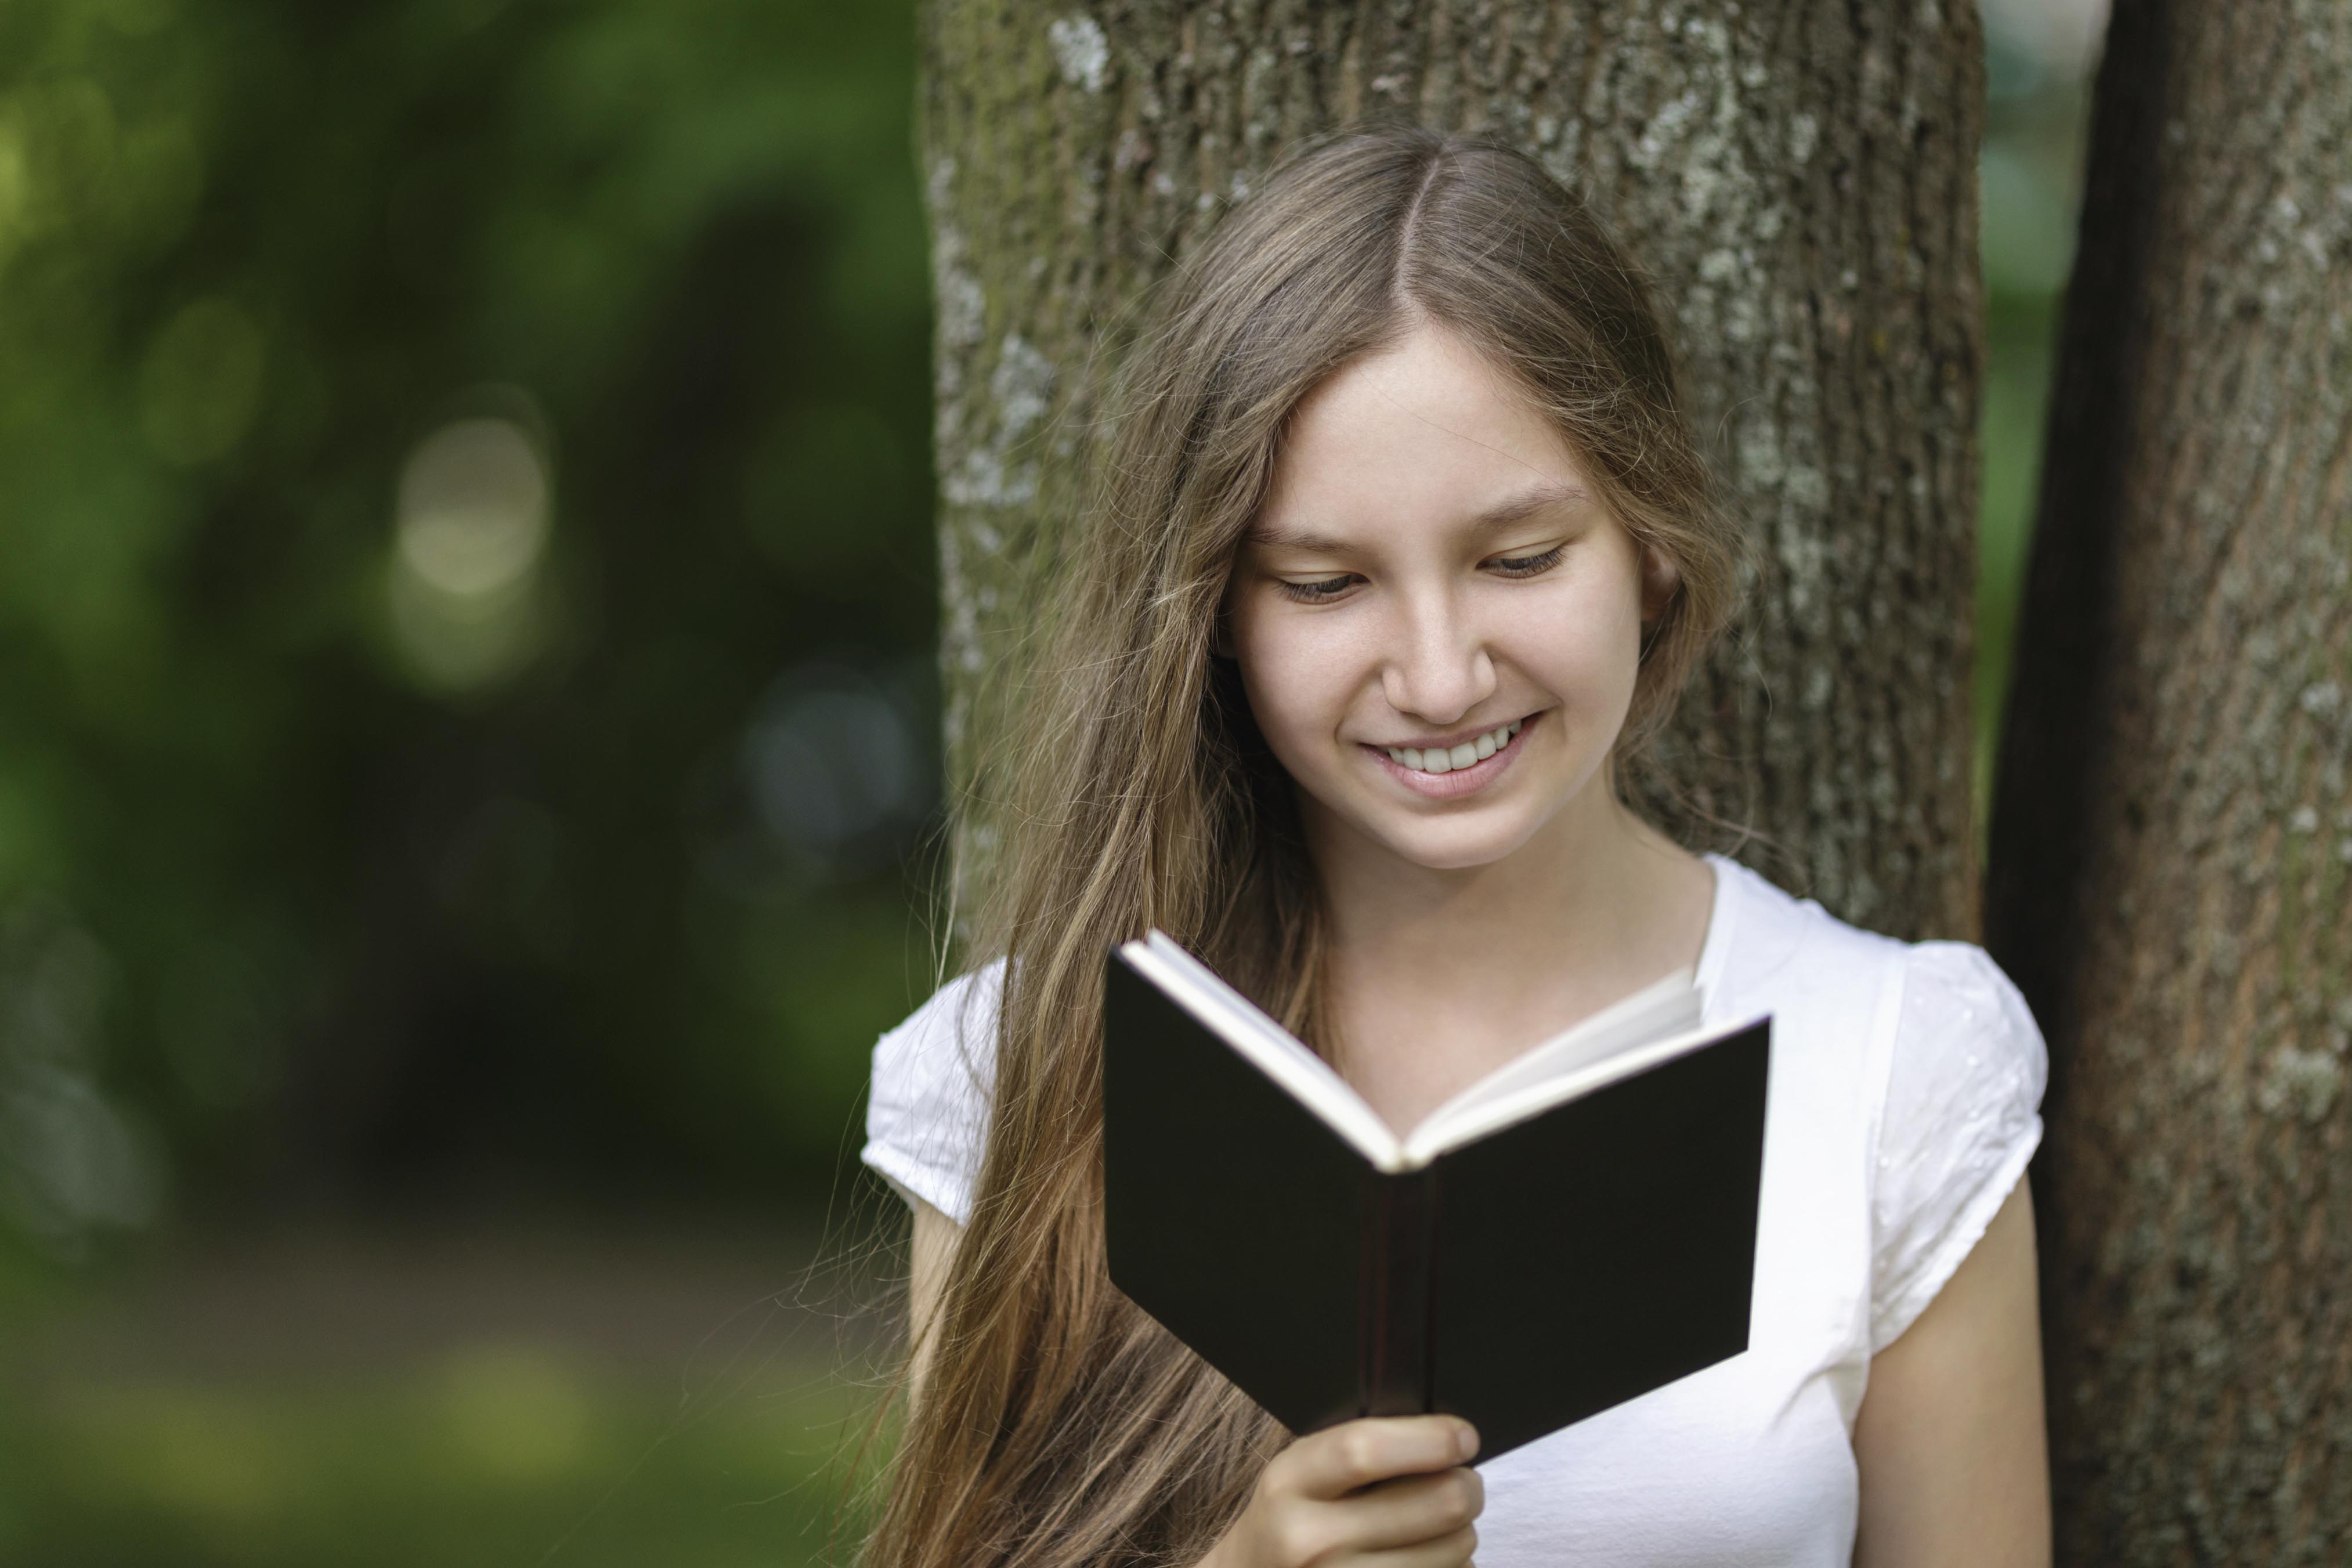 A female student reading a black book.